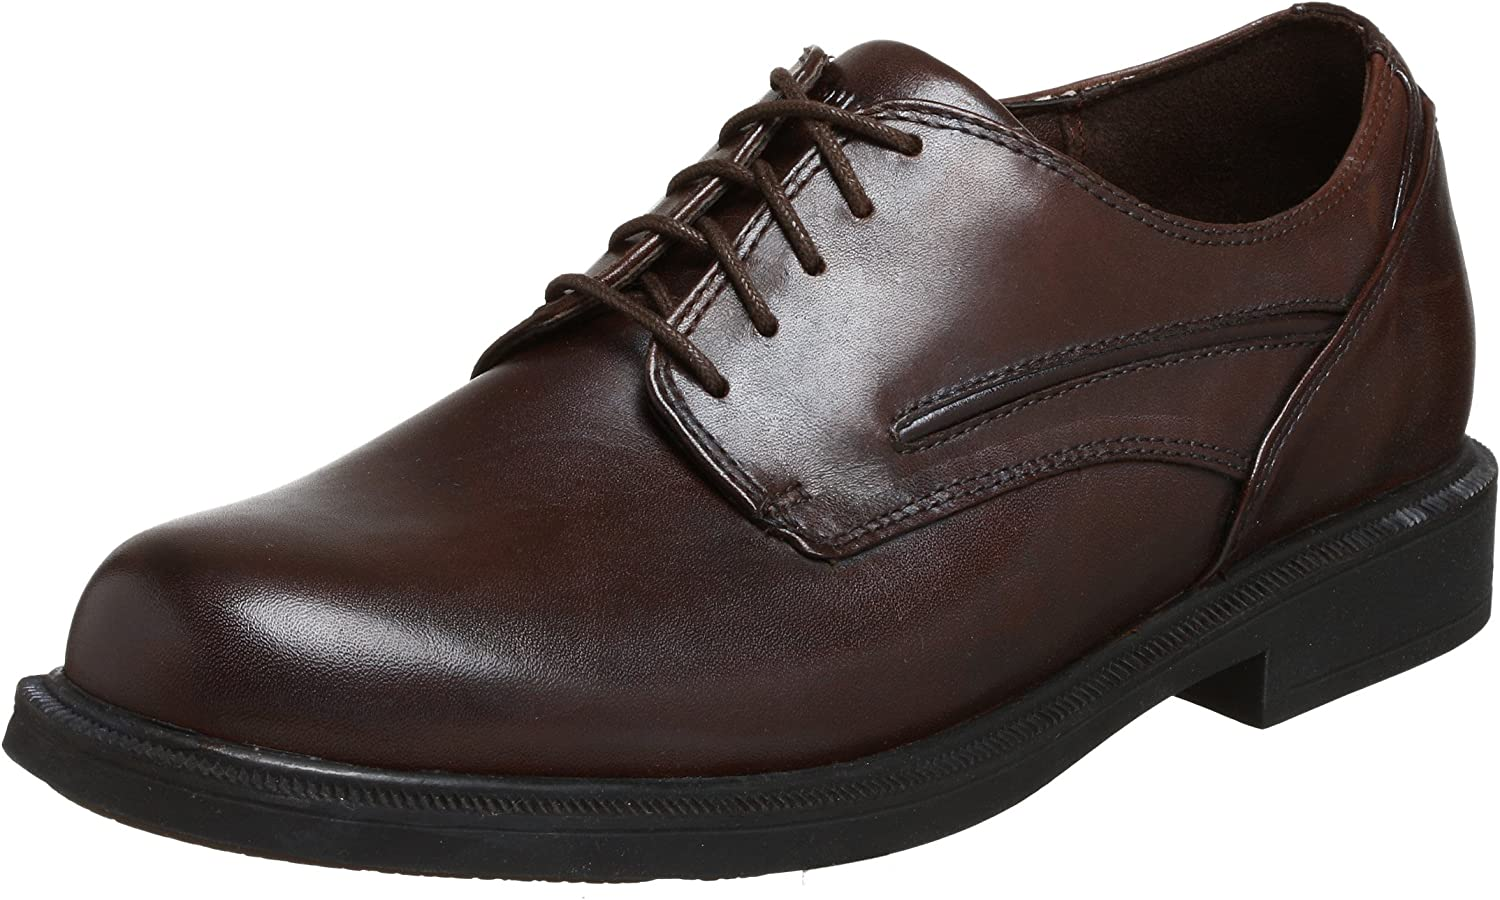 Dunham Men's Burlington Waterproof Oxford,Smooth Brown,10.5 D US